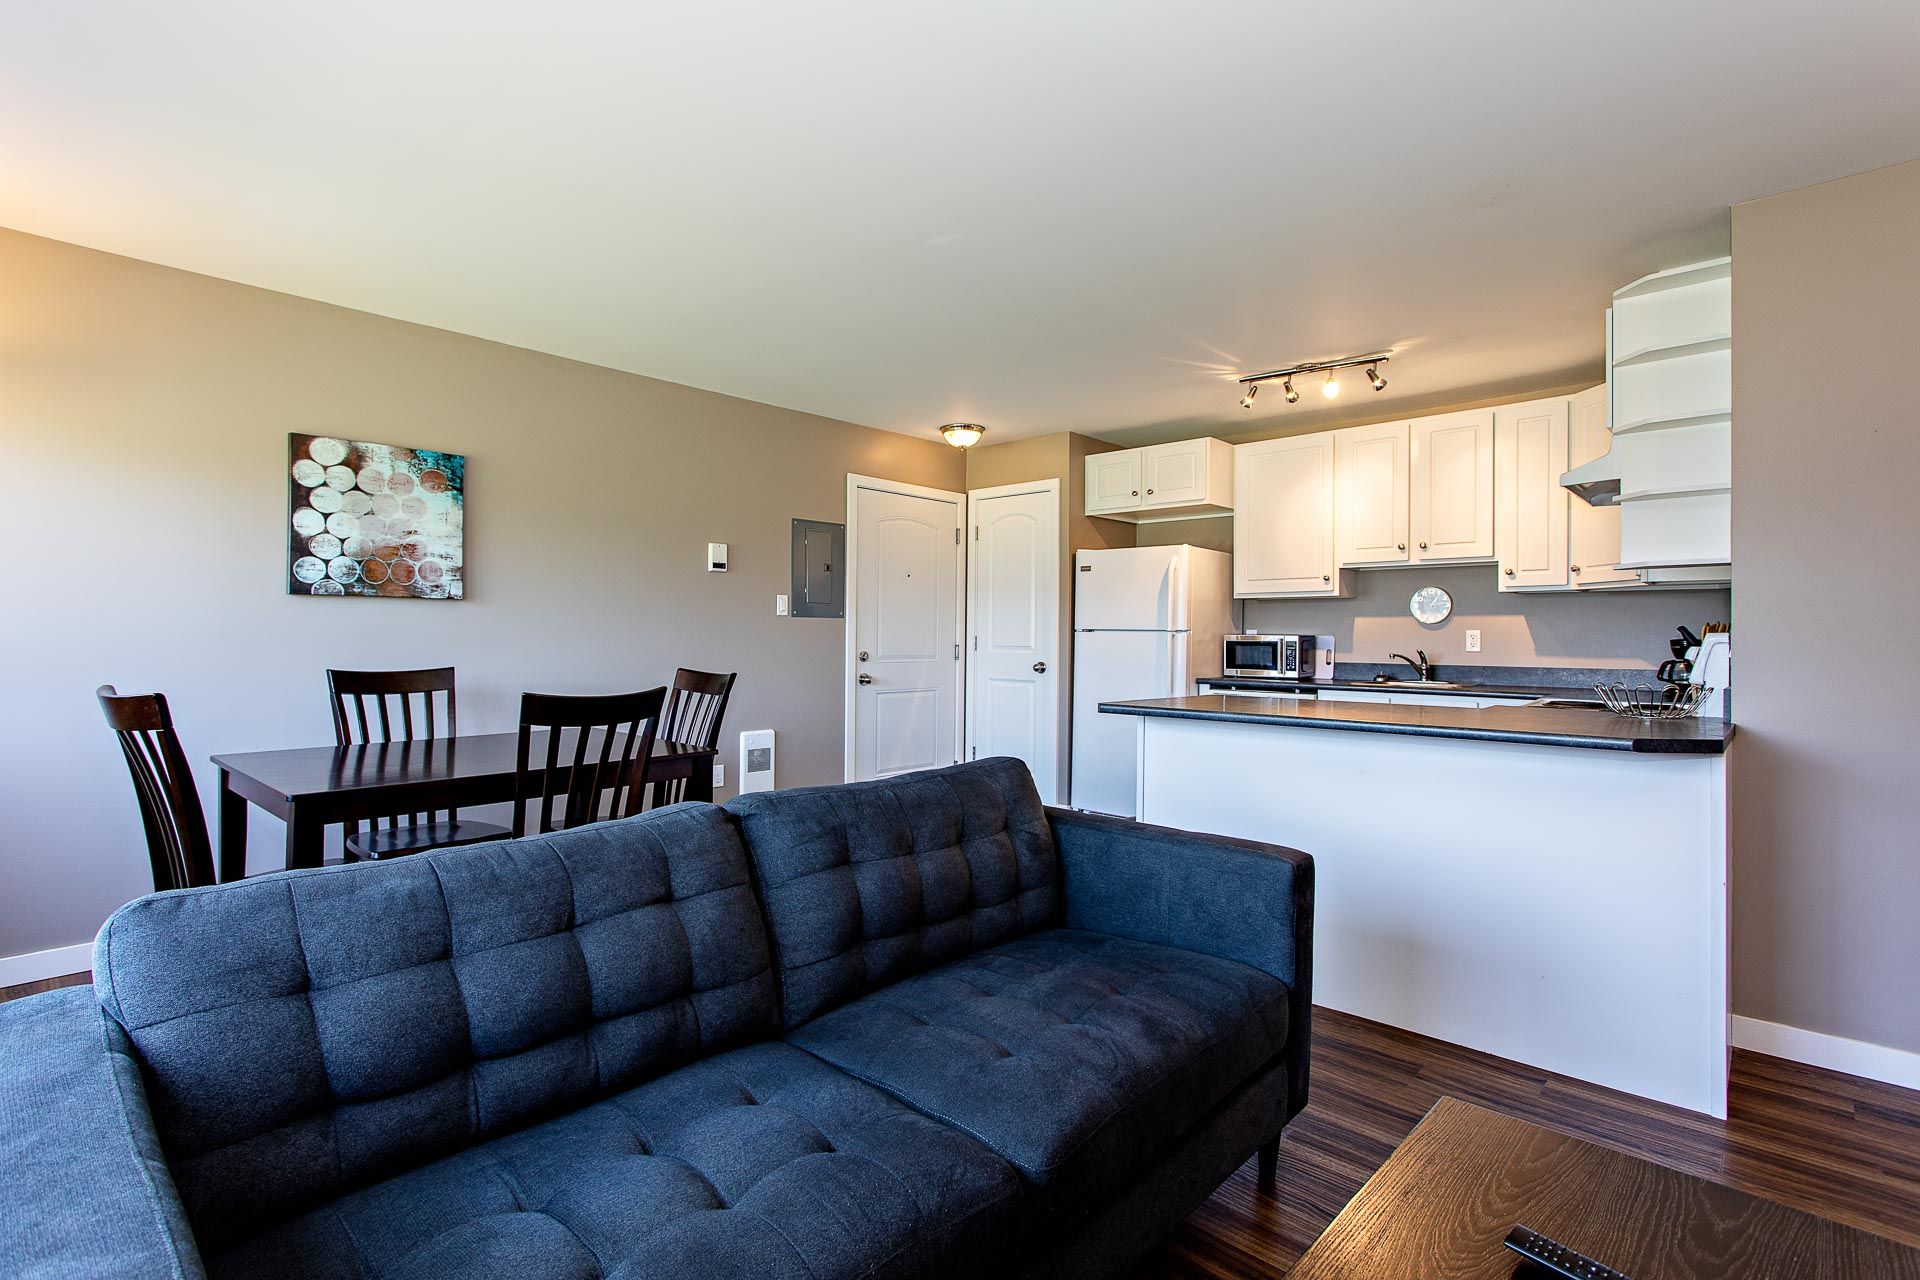 Furnished living room, dining room, and kitchen at Hillcrest Place Apartments in Kitimat, B.C.